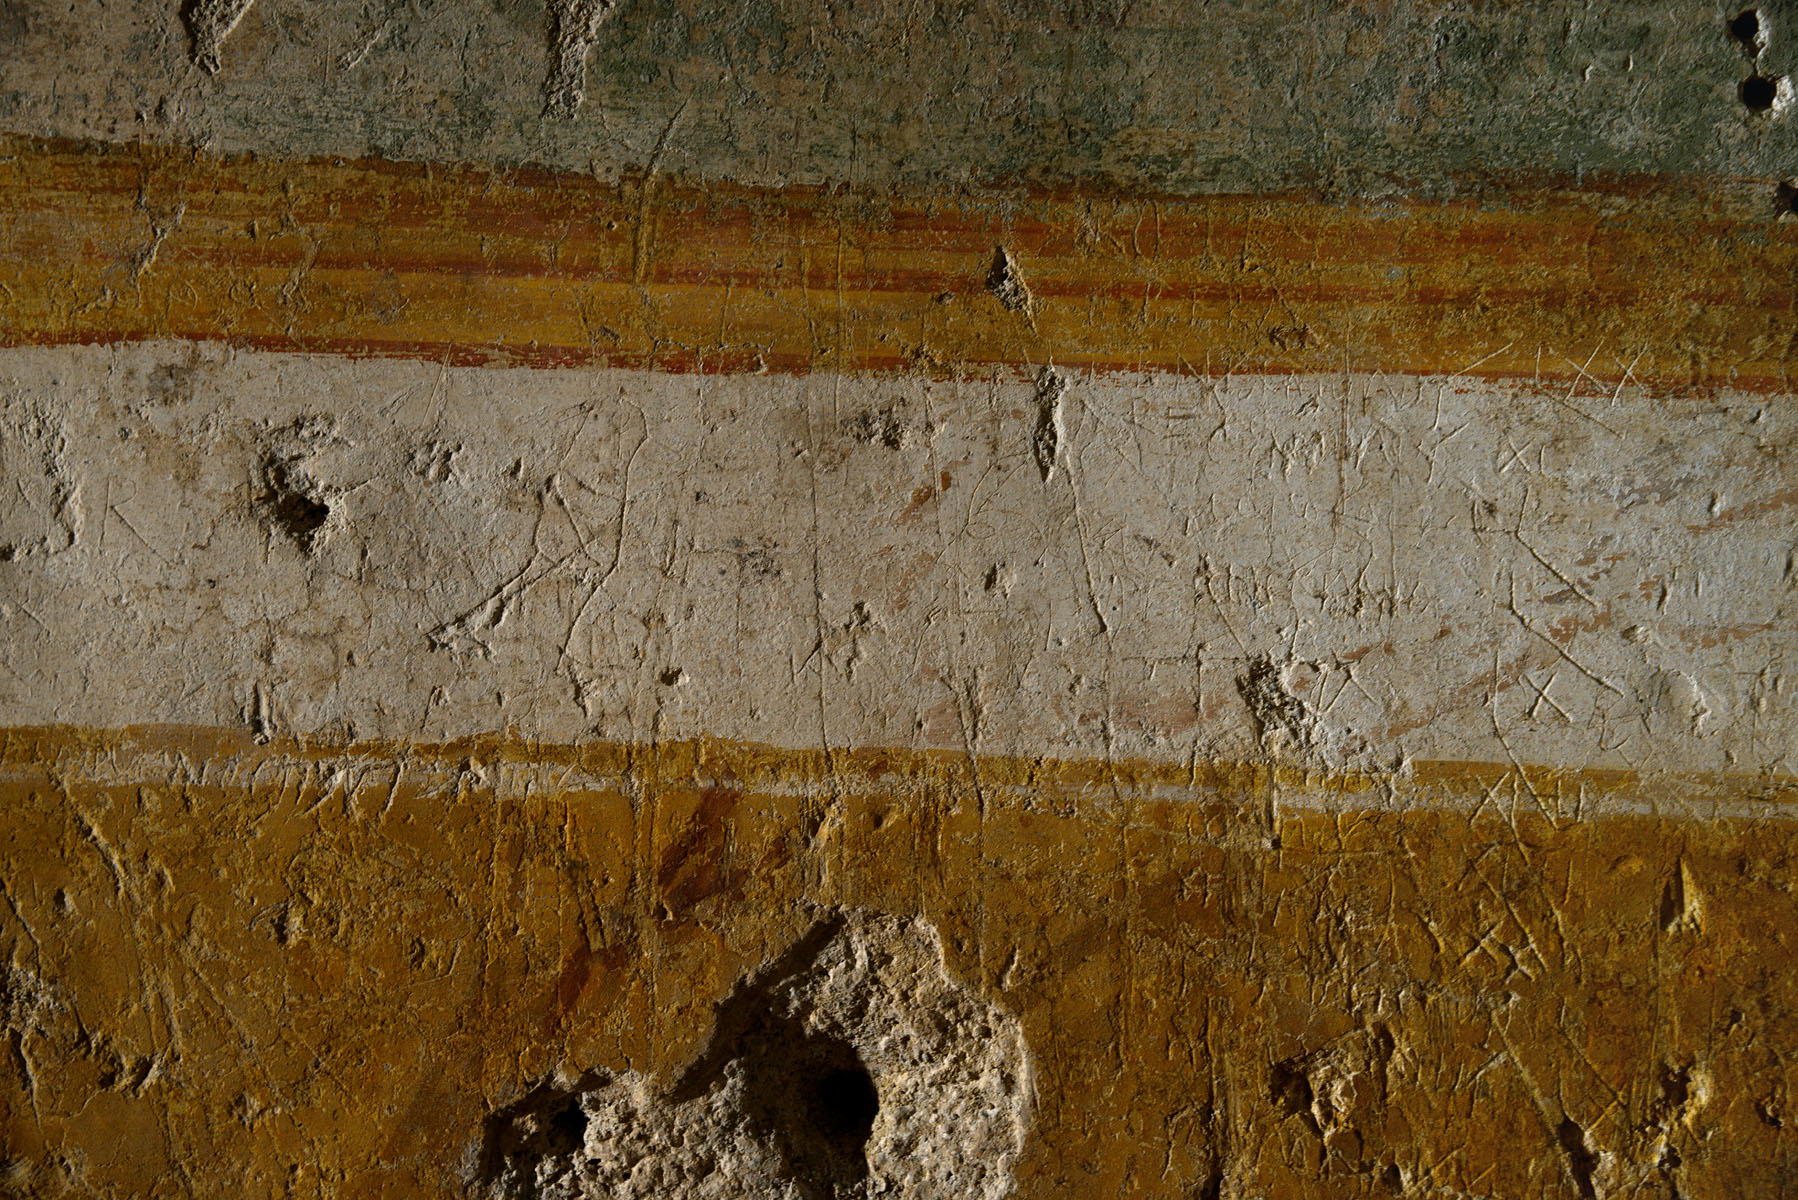 Graffiti on a wall of an ancient market (Macellum Liviae?) under the basilica Santa Maria Maggiore in Rome. 4th century CE. Rome, Basilica of Saint Mary Major, excavations